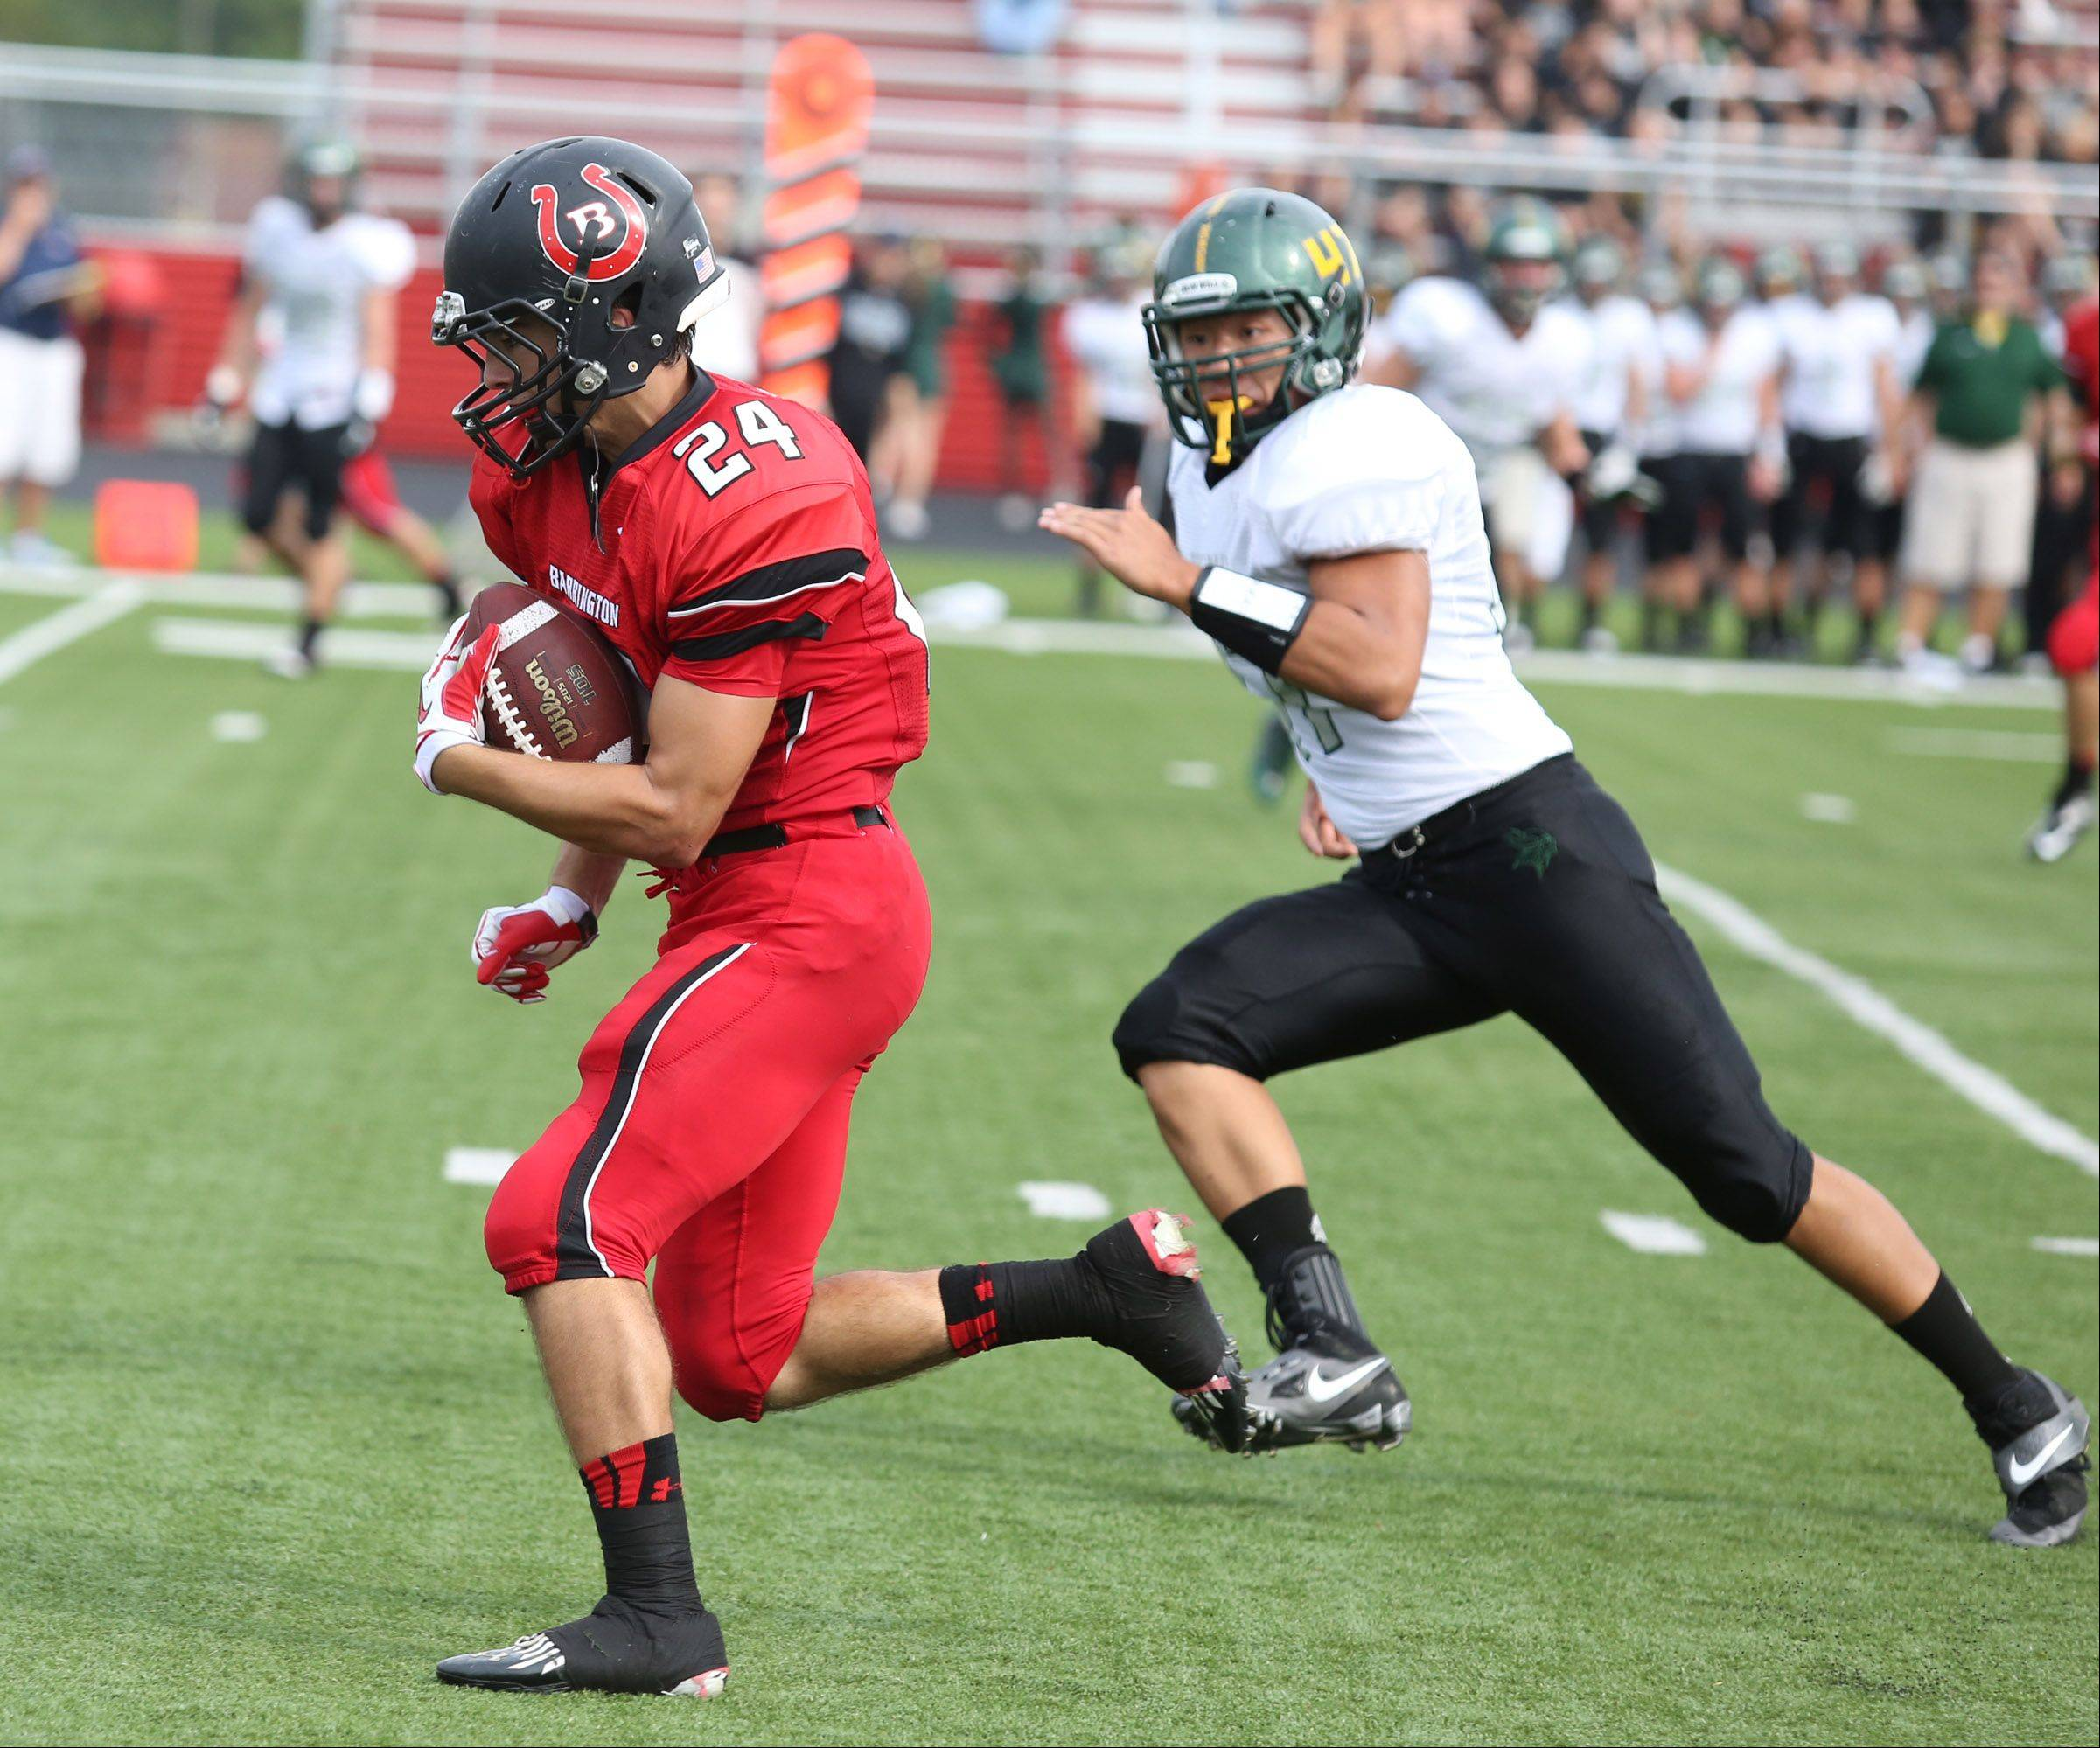 Barrington Dylan Bingham runs for a touchdown against Fremd at Barrington on Saturday, October 5.